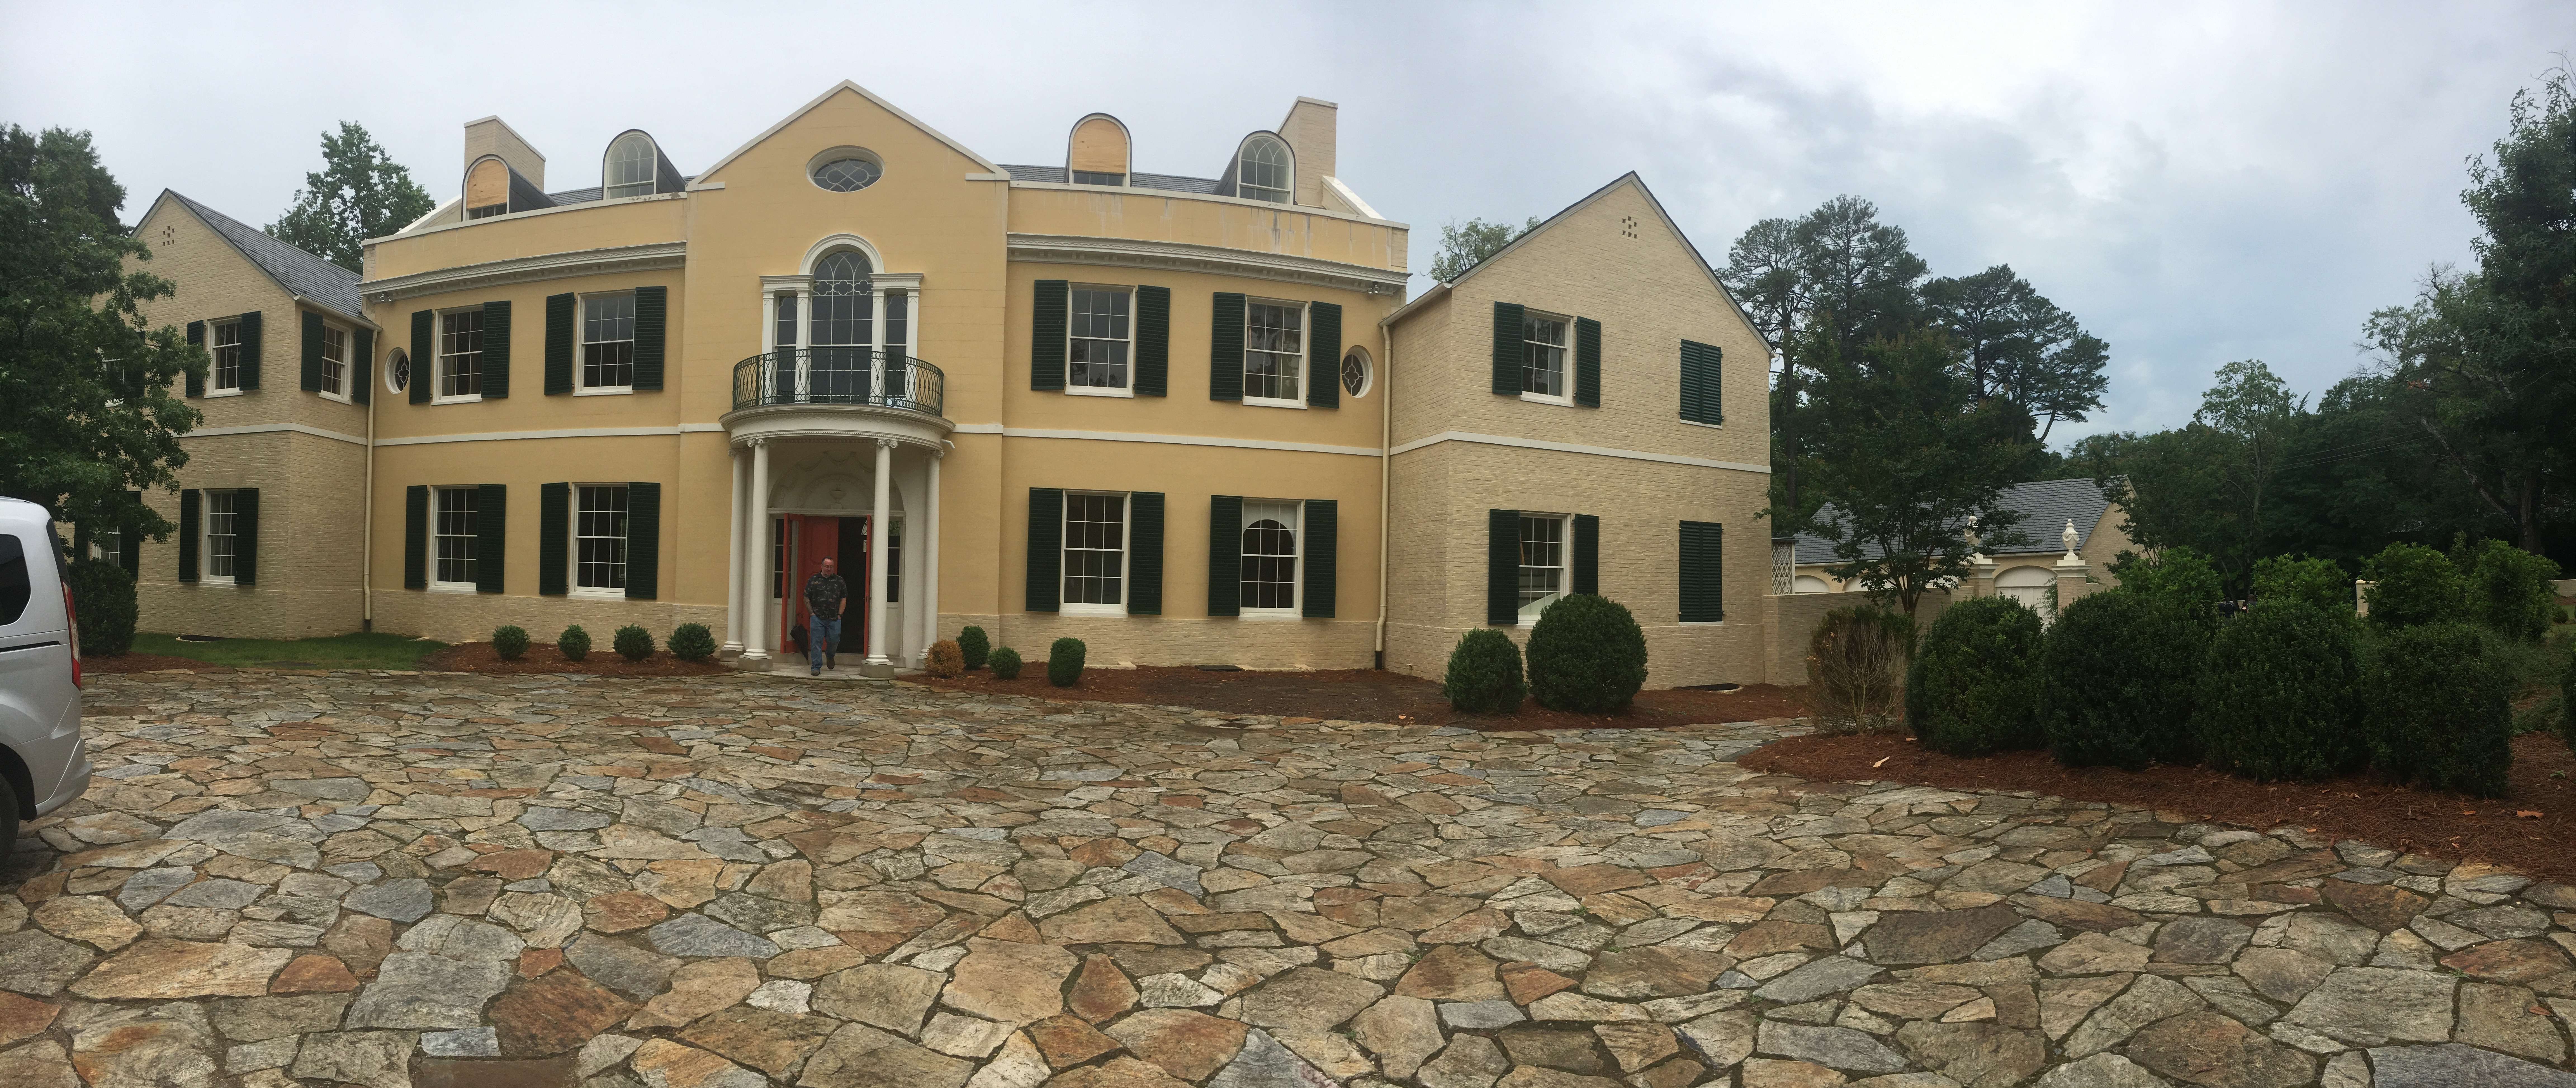 May Patterson Goodrum House designed by Philip Shutze